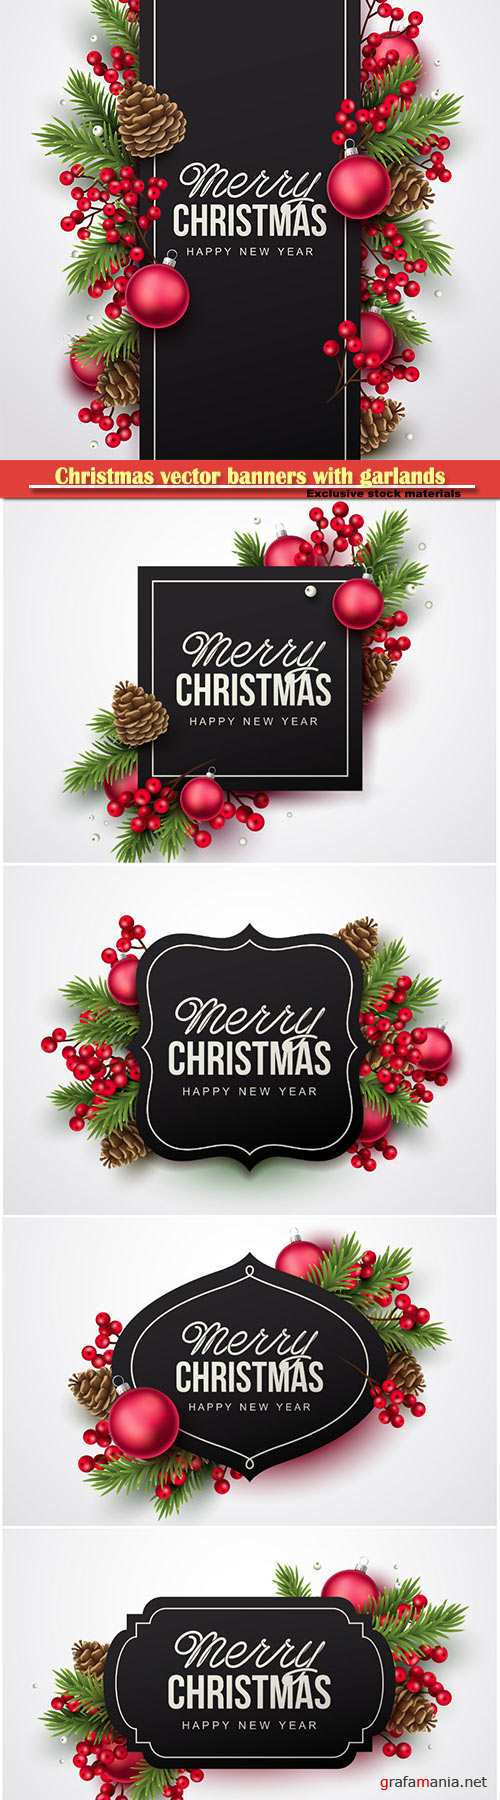 Christmas vector banners with garlands of Christmas trees of cones and balls